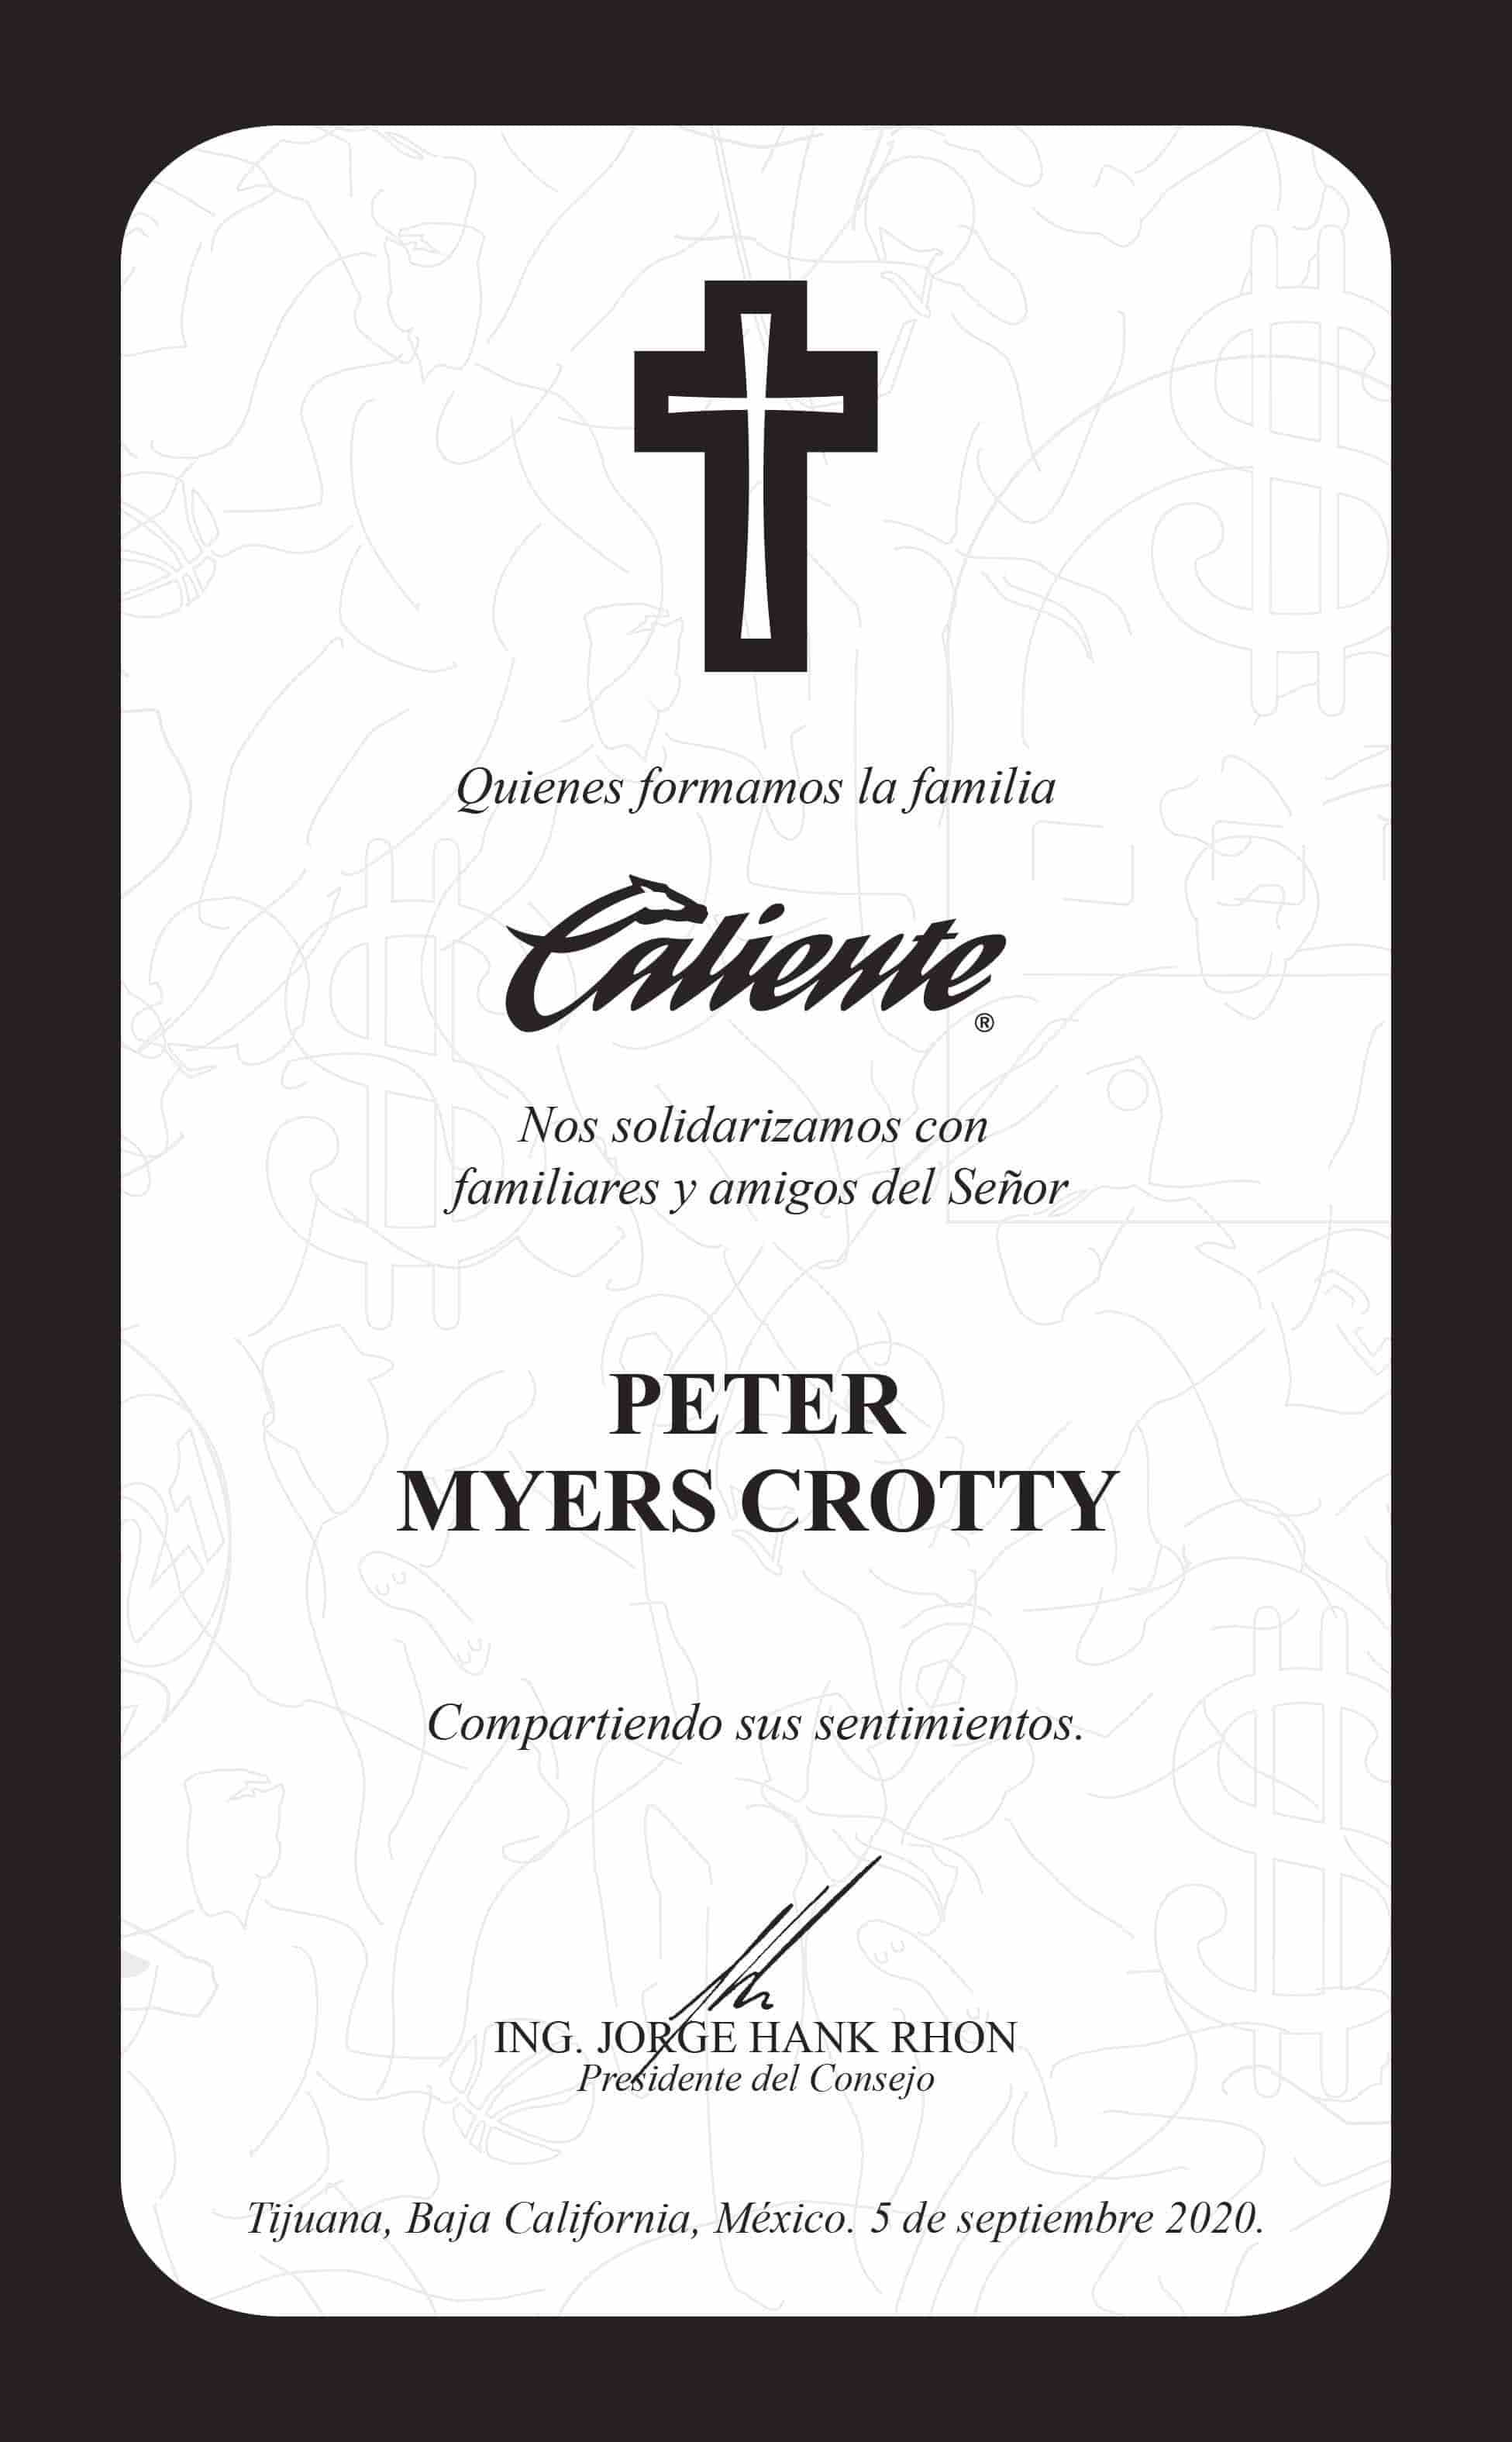 Peter Myers Crotty